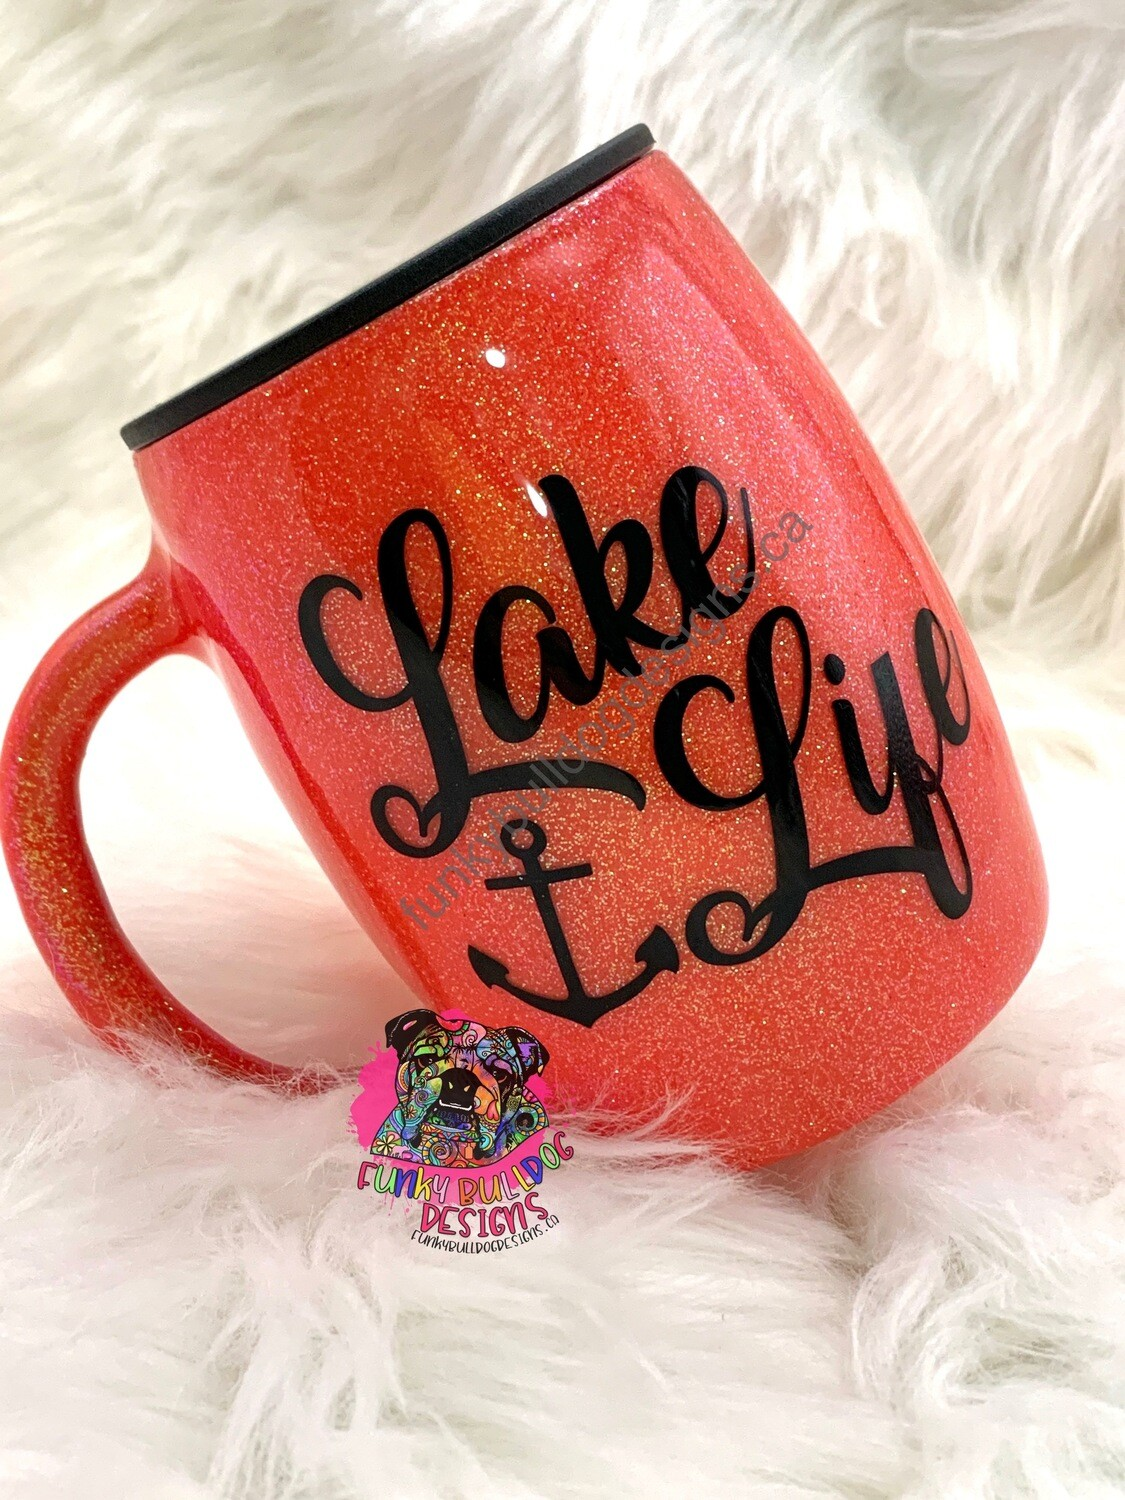 14oz stainless steel painted and glitter tumbler - Lake Life